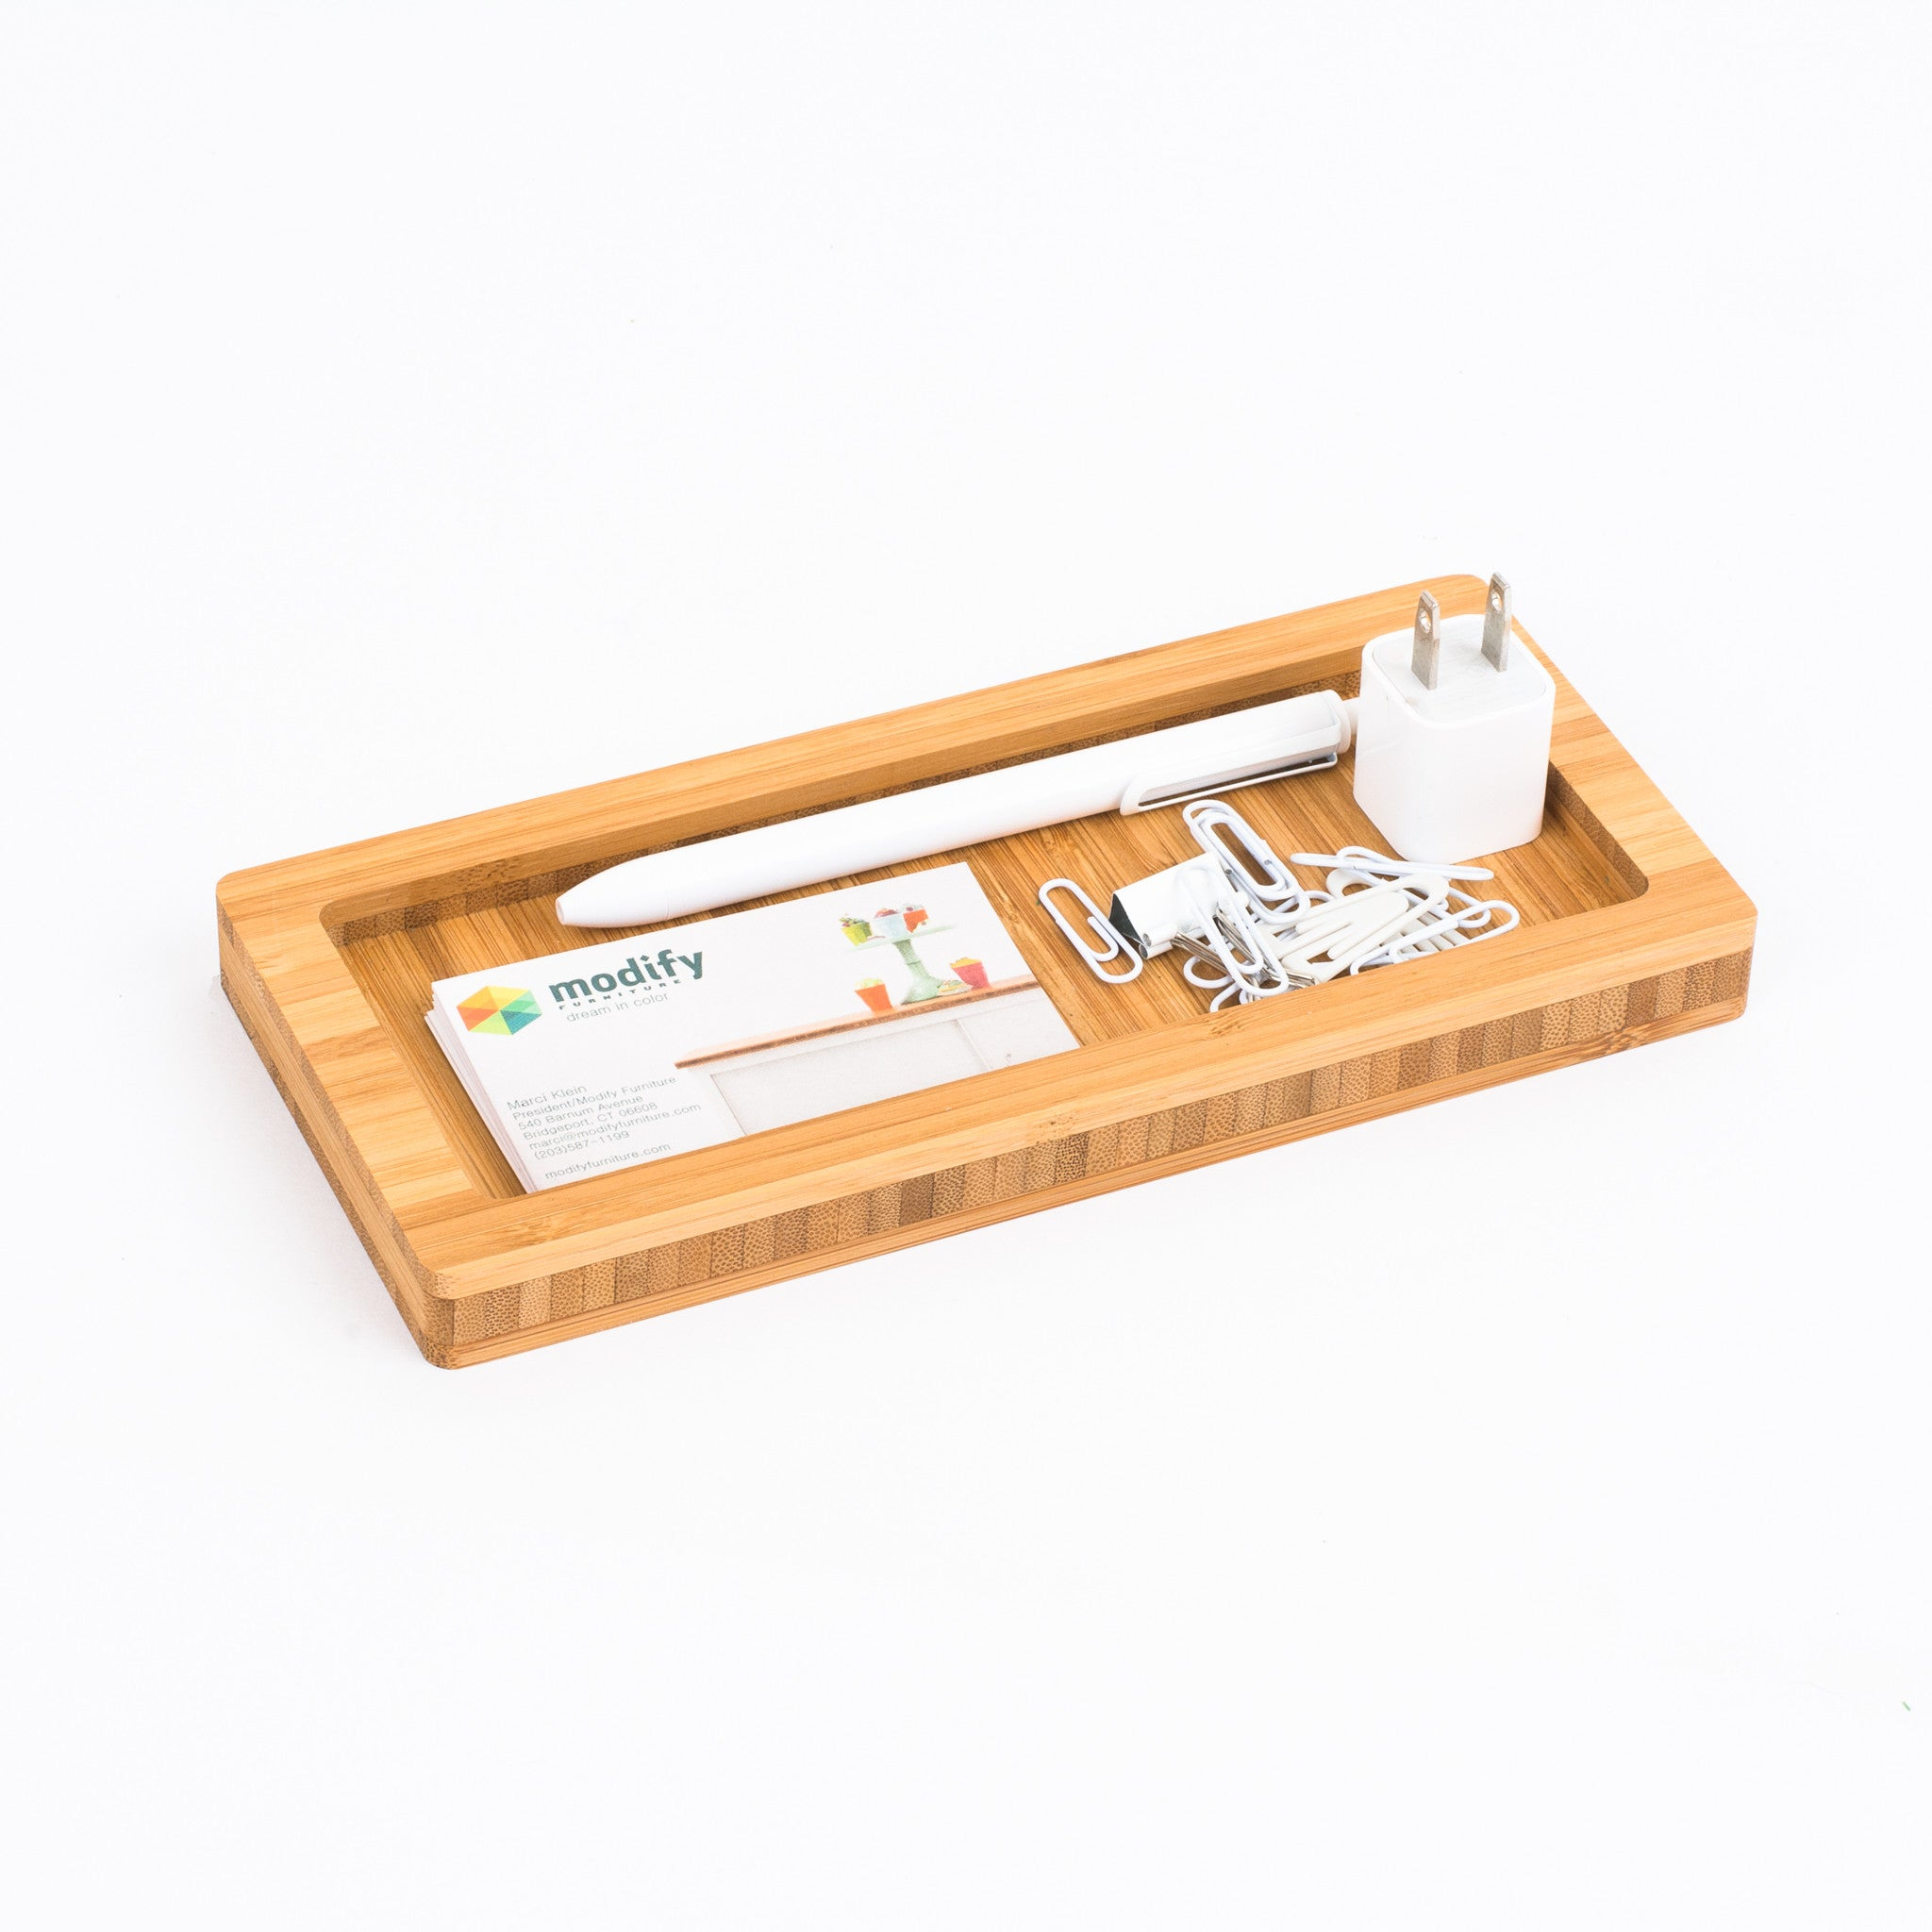 ... Modify Drop In Desk Accessory Desk Caddy In Eco Friendly Bamboo Low Voc  Finish